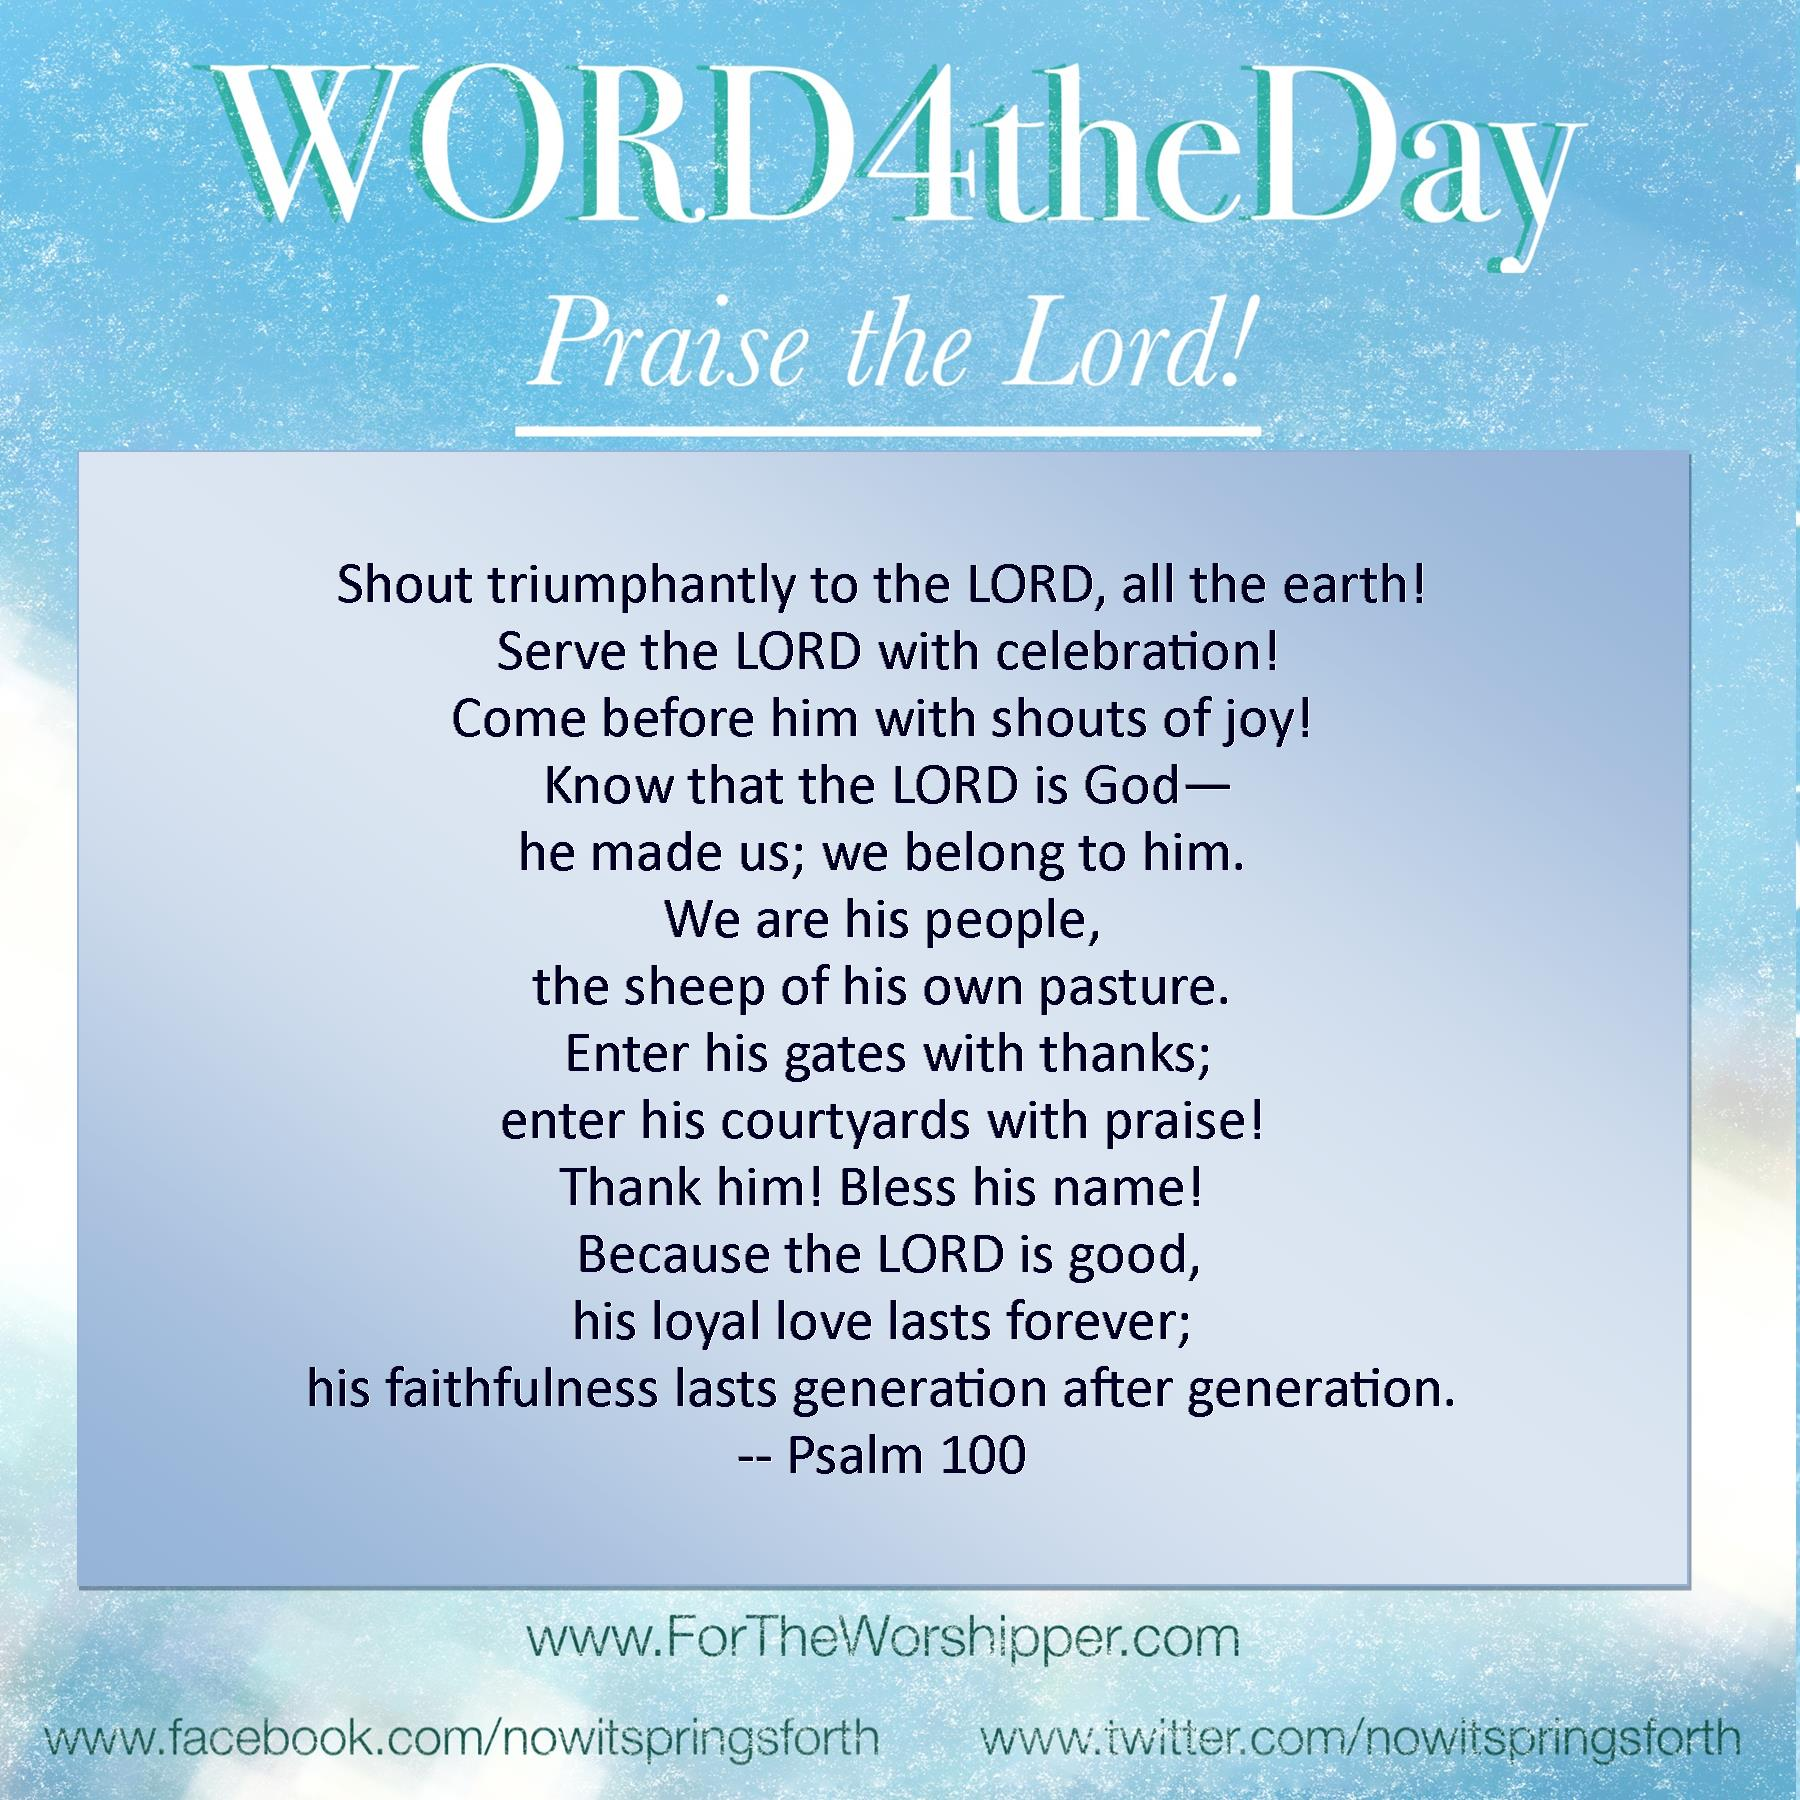 WORD4theDay 07 06 14 – For the Worshipper